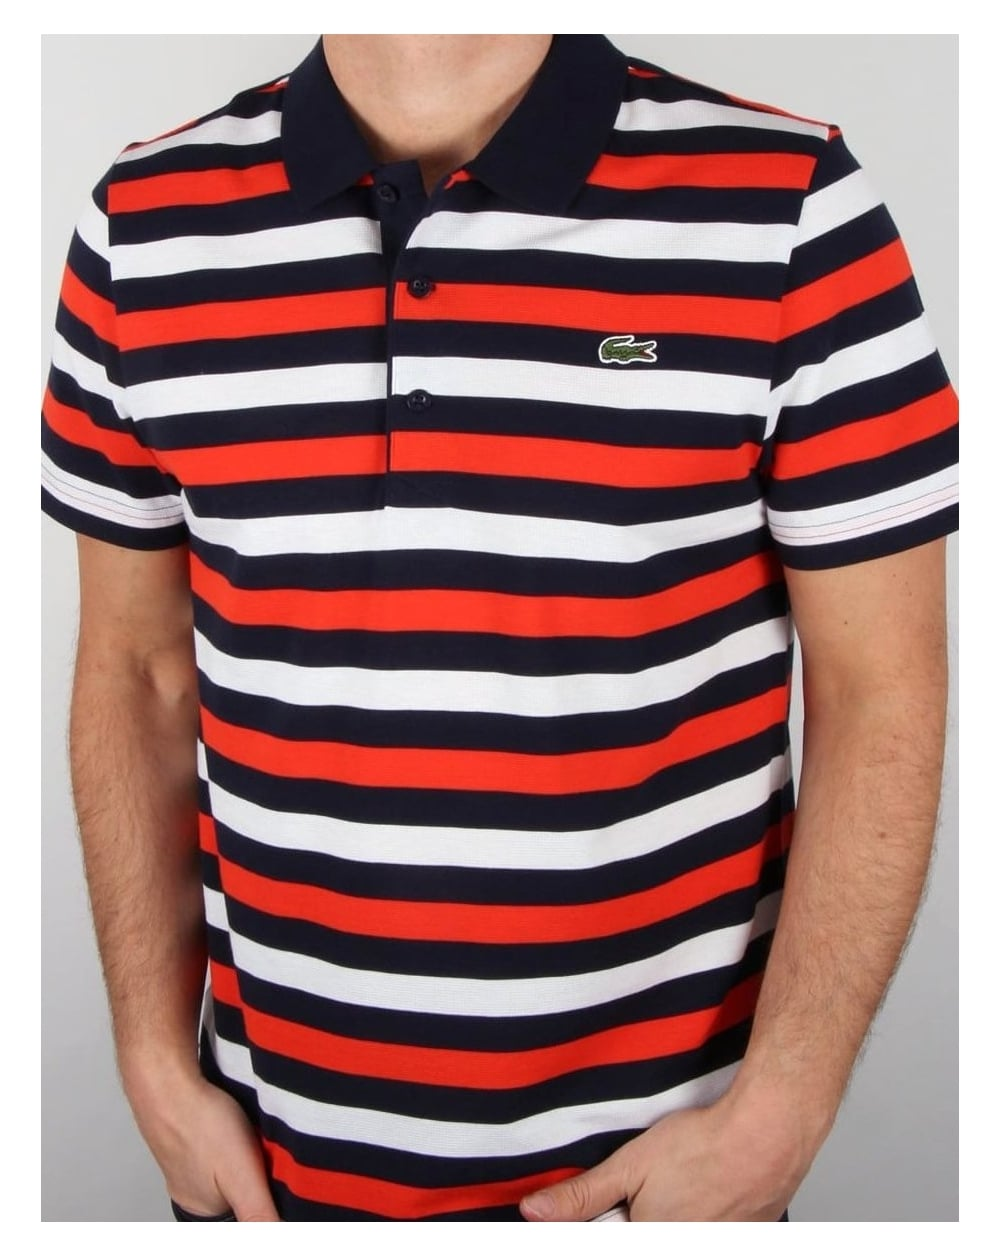 Lacoste fine stripe polo shirt navy red white cotton top mens for Red white striped polo shirt